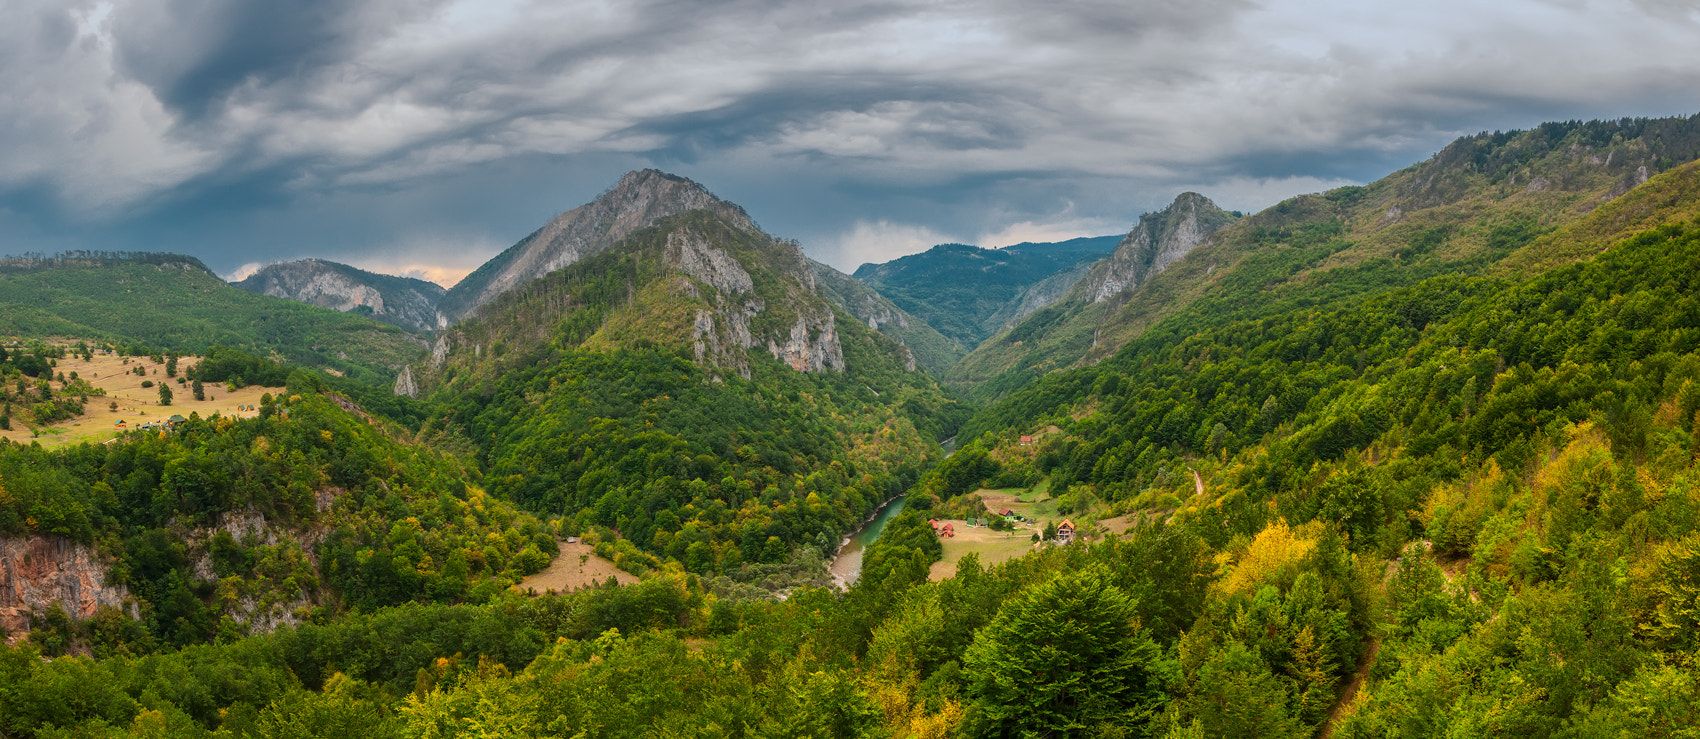 Photograph The valley by Sergey Shaposhnikov on 500px